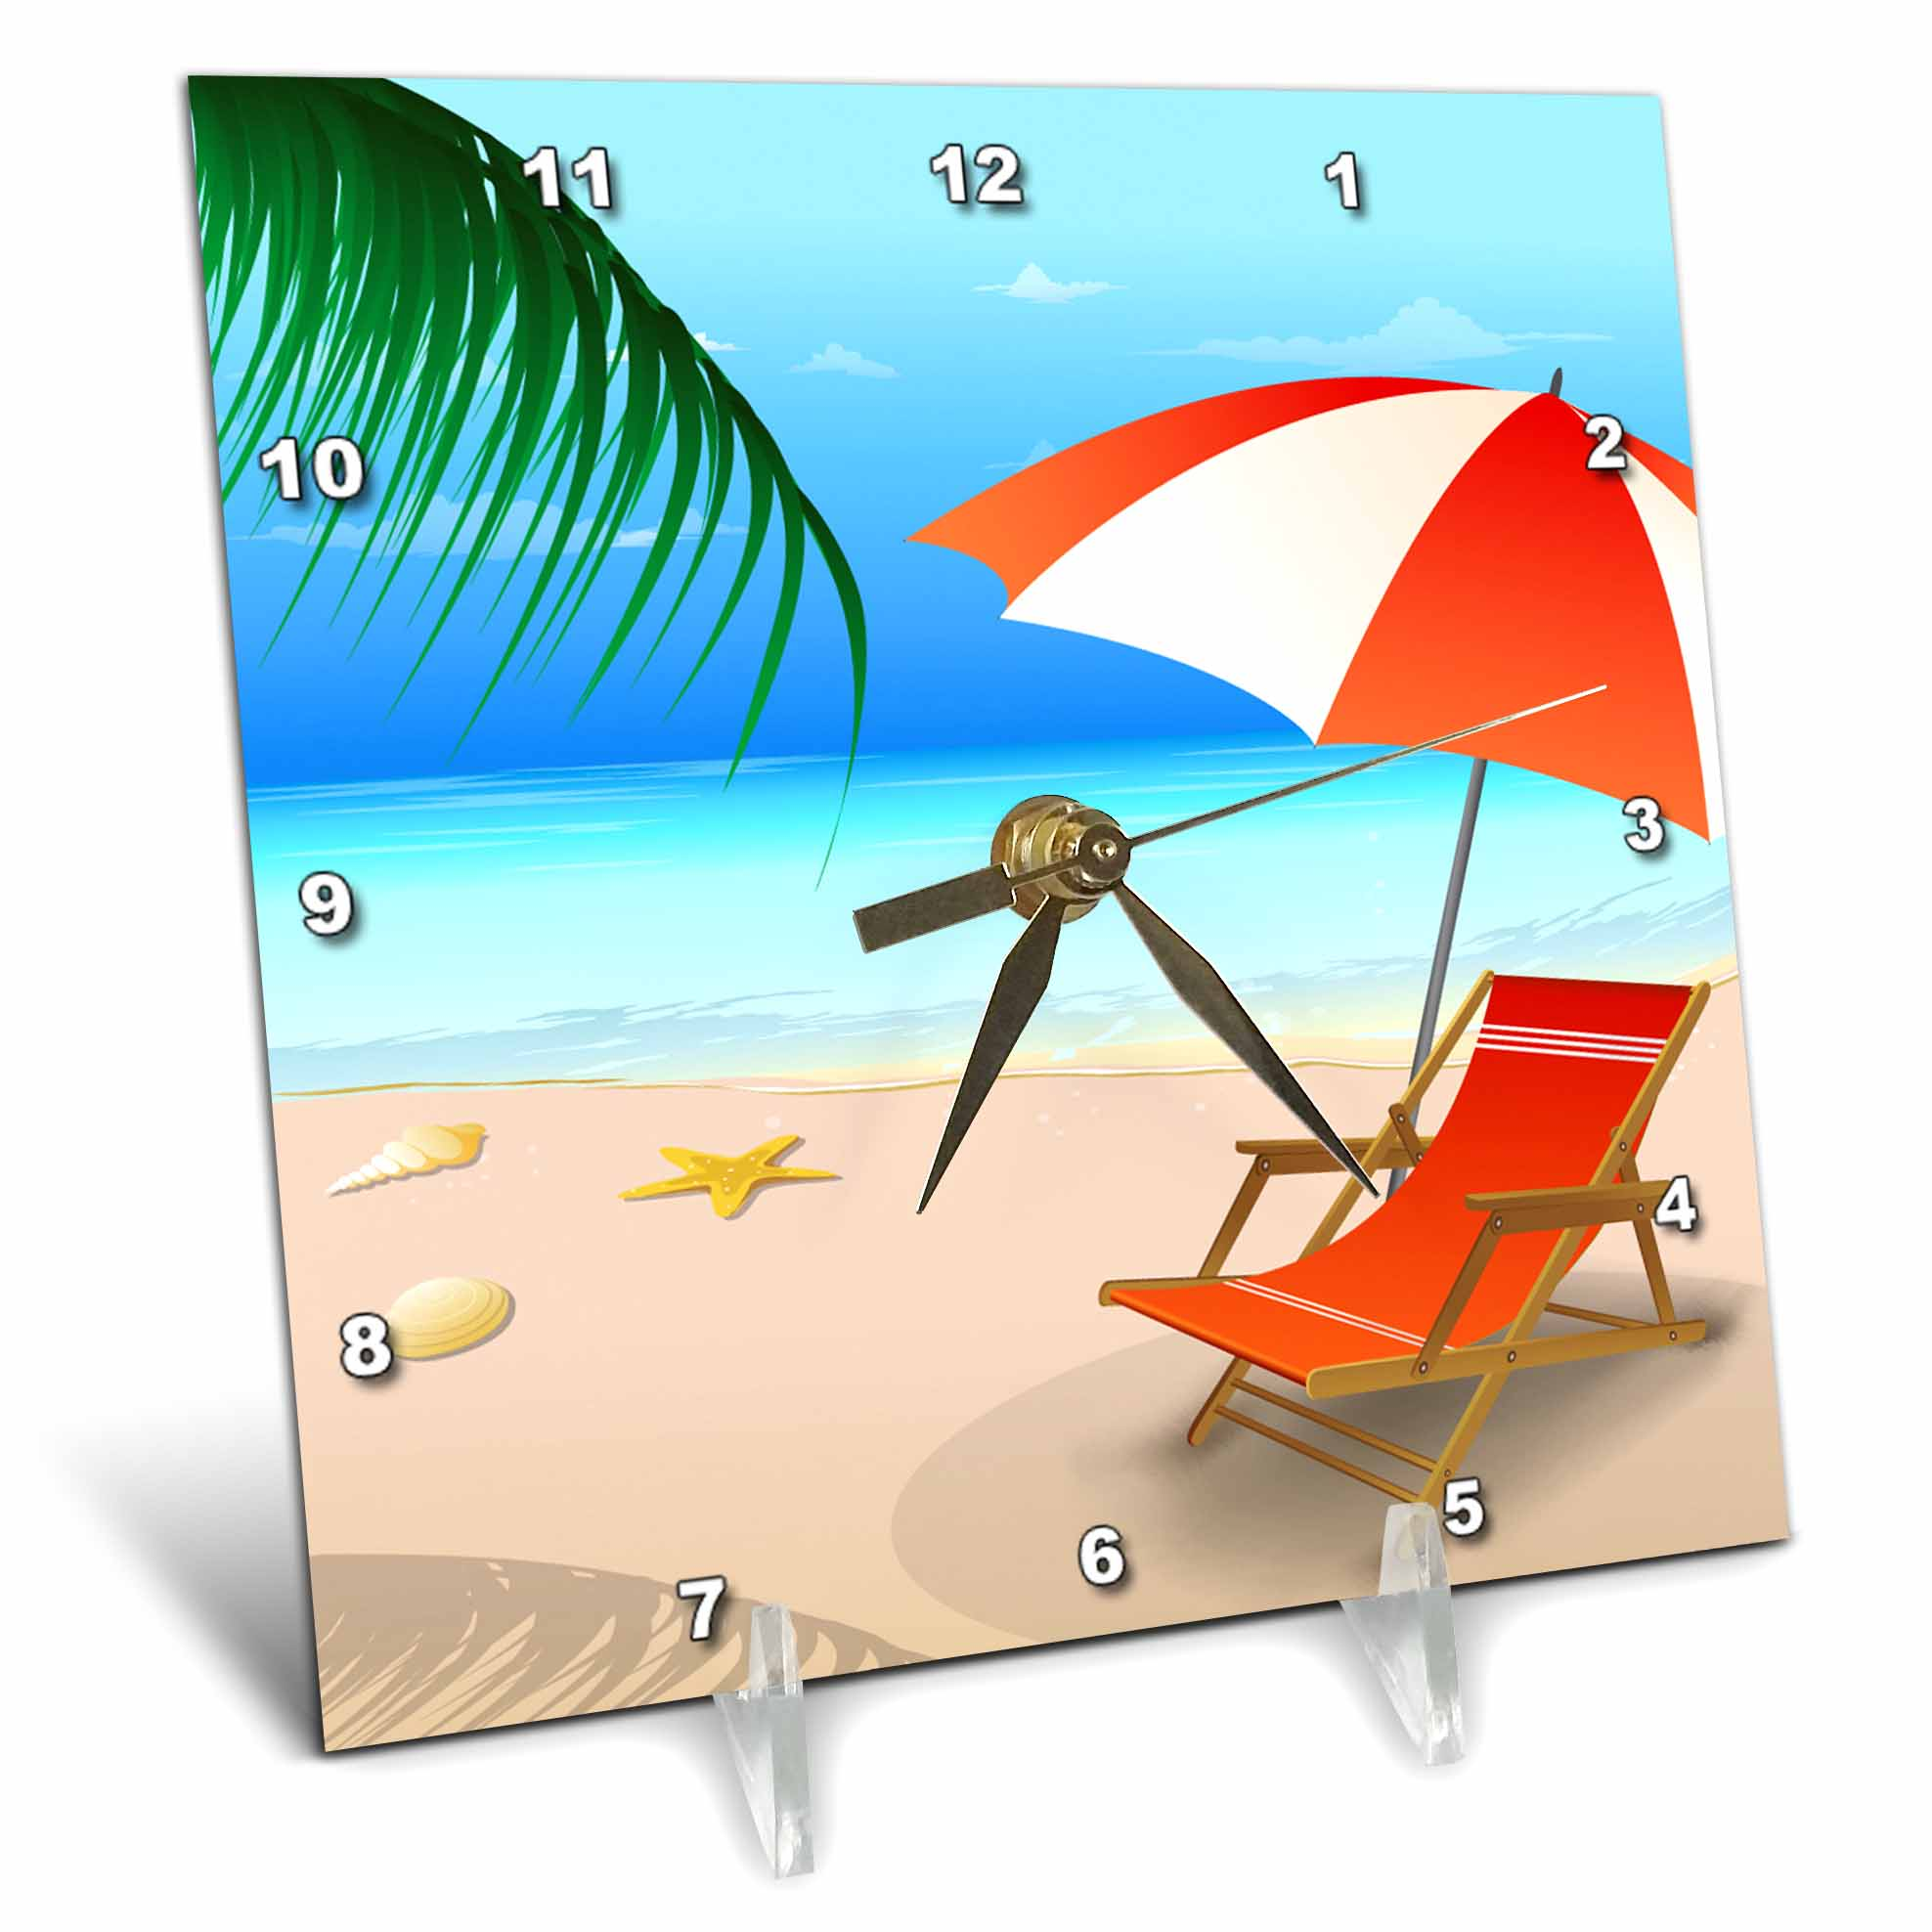 3dRose Blue and Sandy Beach Scene With Beach Lounger and Umbrella In Orange and White, Desk Clock, 6 by 6-inch by 3dRose